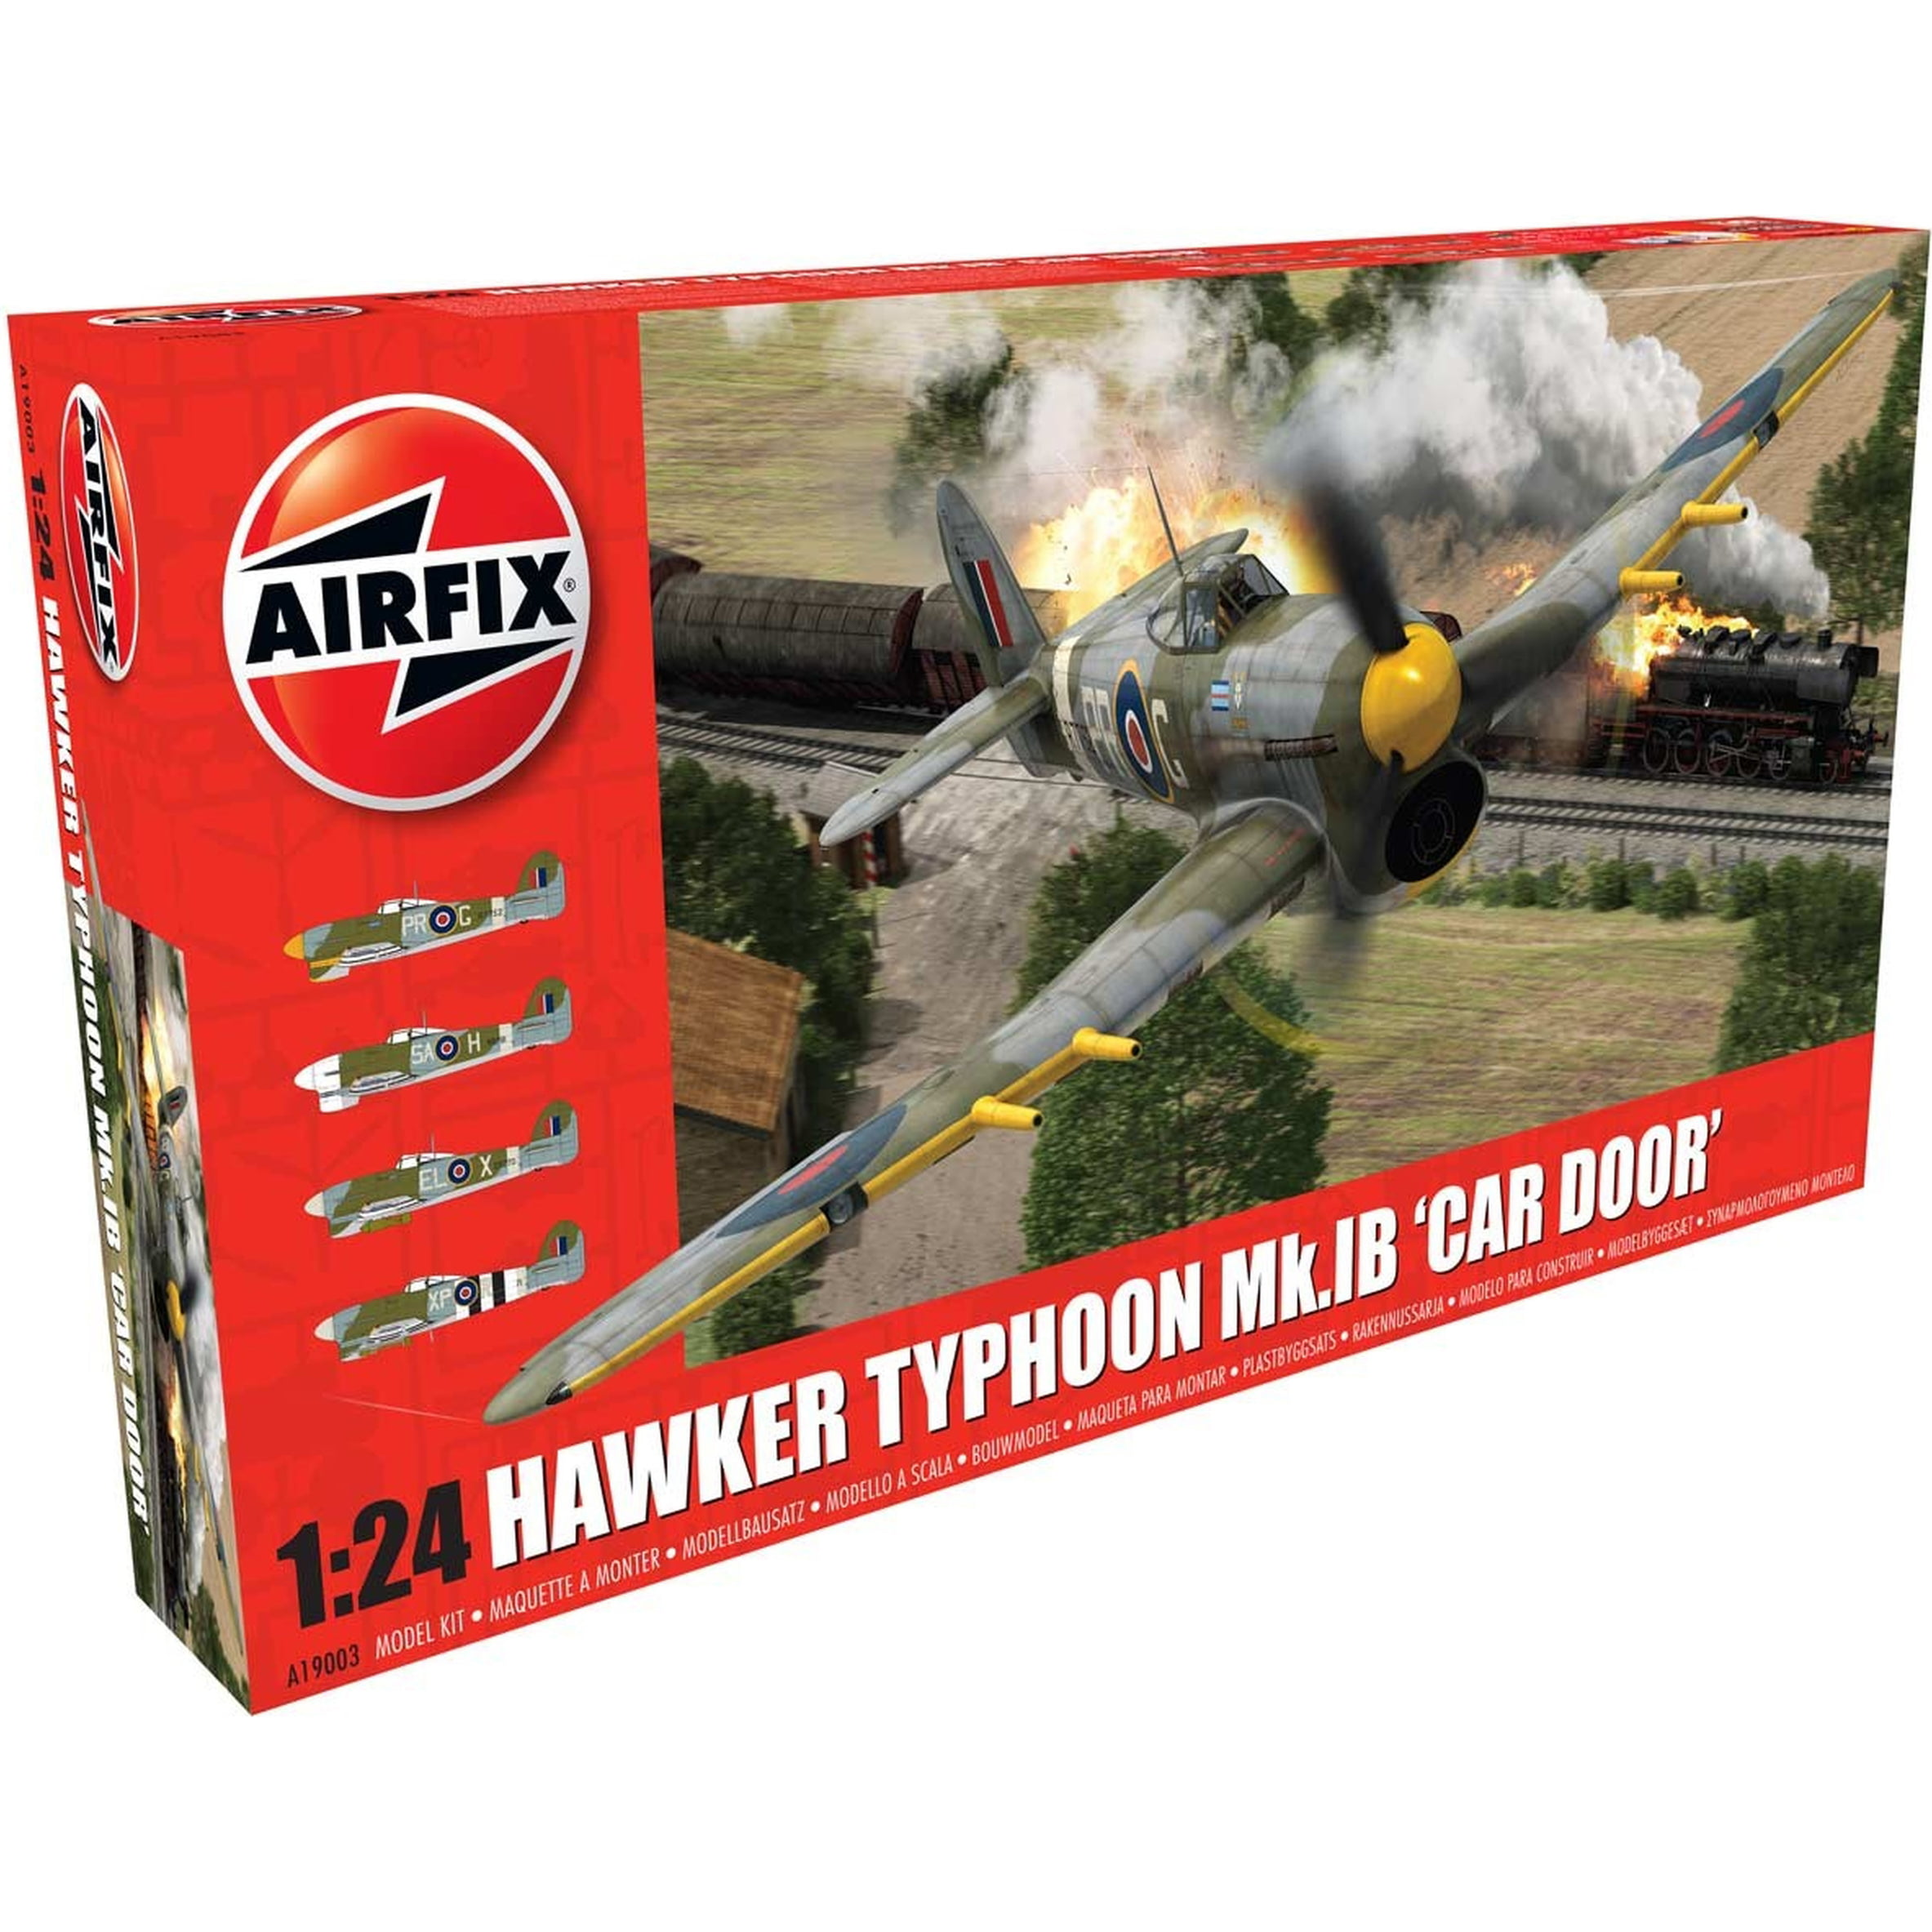 Airfix Hawker Typhoon 1B Car Door 1:24 Military Aircraft Plastic Model Kit by Airfix